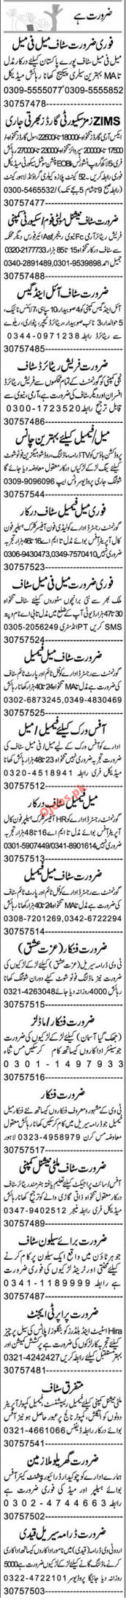 Daily Express Newspaper Classified Jobs in Lahore 2021